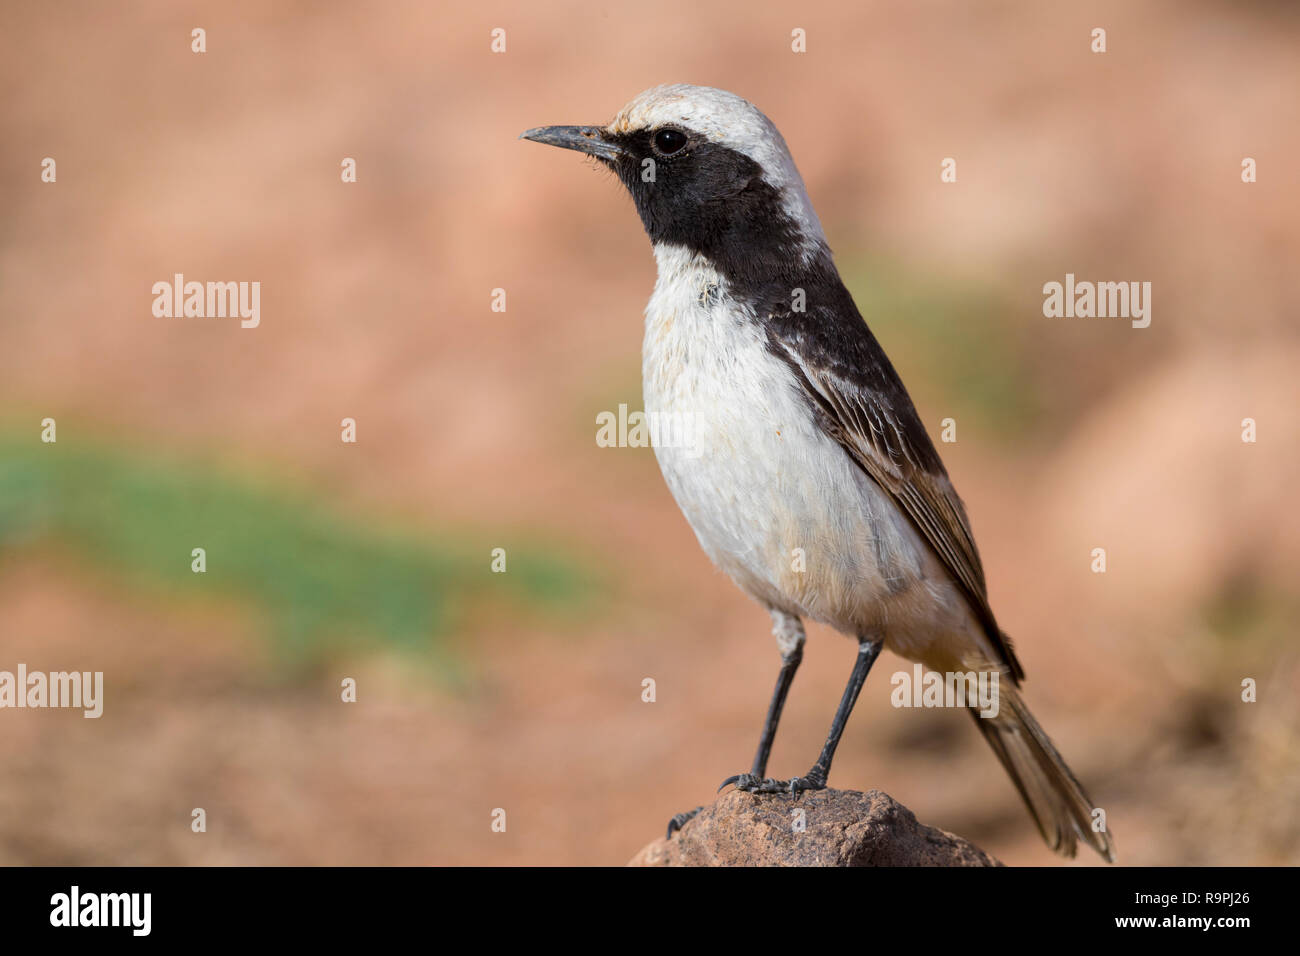 Red-rumped Wheatear (Oenanthe moesta), adult male standing on a stone in Morocco - Stock Image